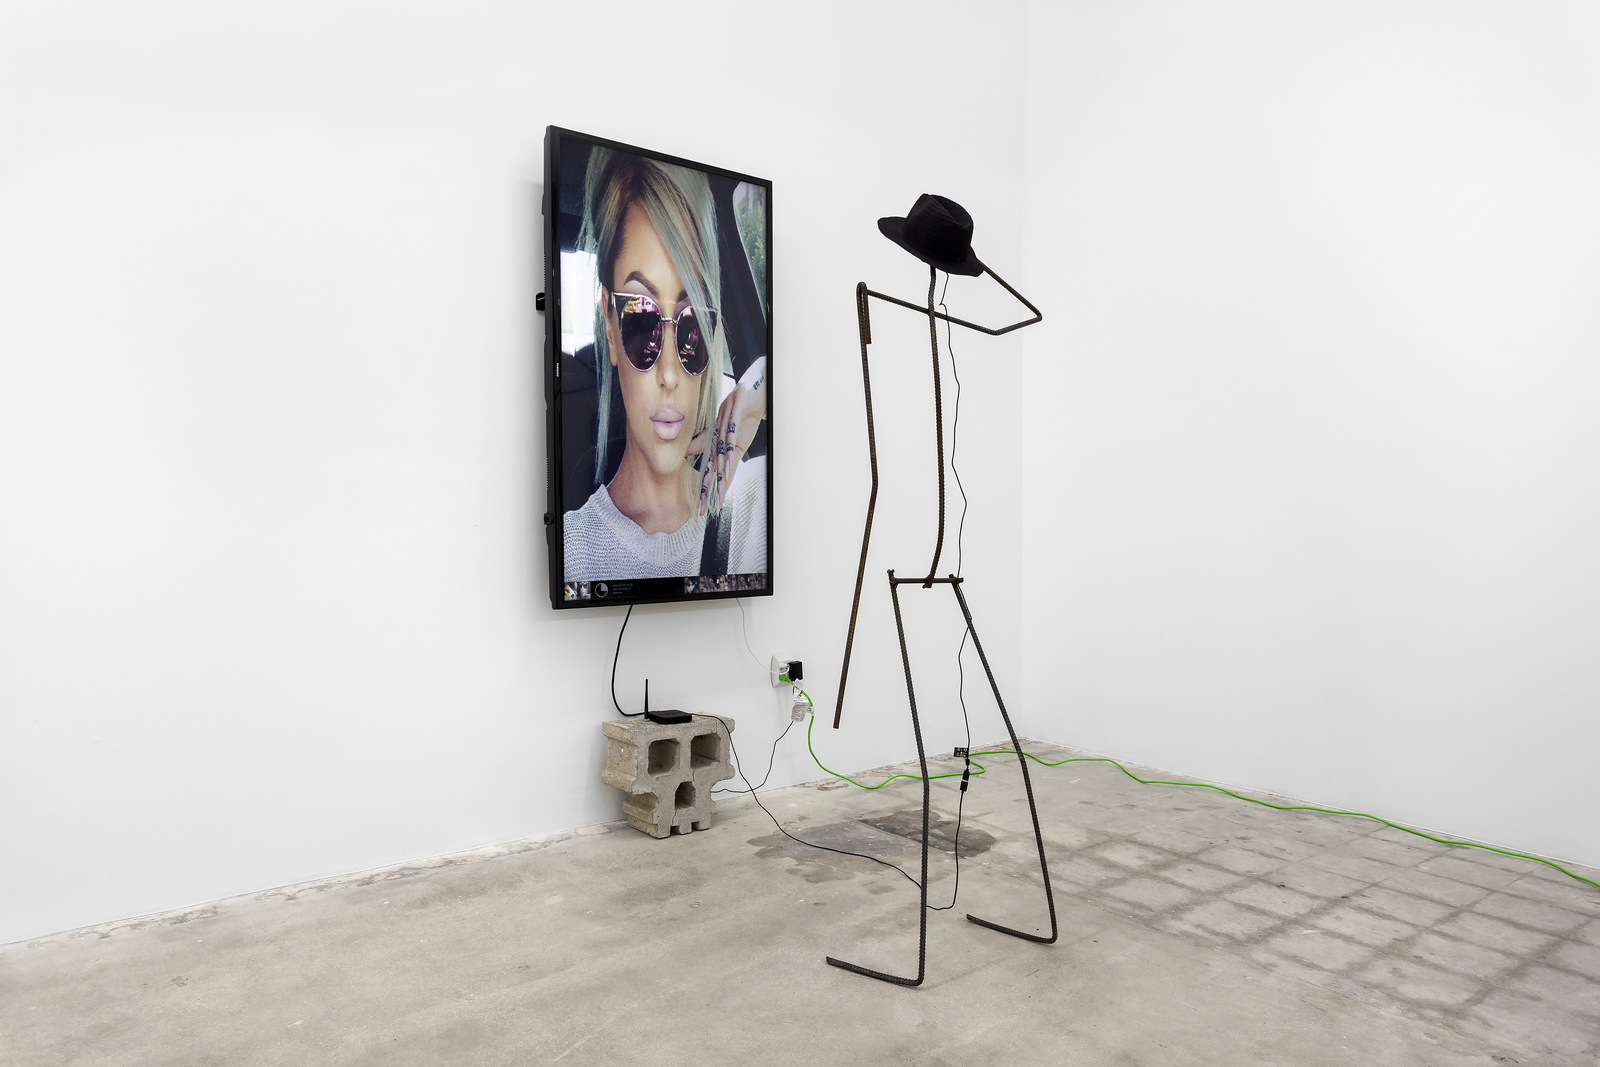 Versteeg_Permanent Vacation_Cement, welded steel, internet-connected computer program with output to 65 inch LCD screen, web cam, straw hat_2016